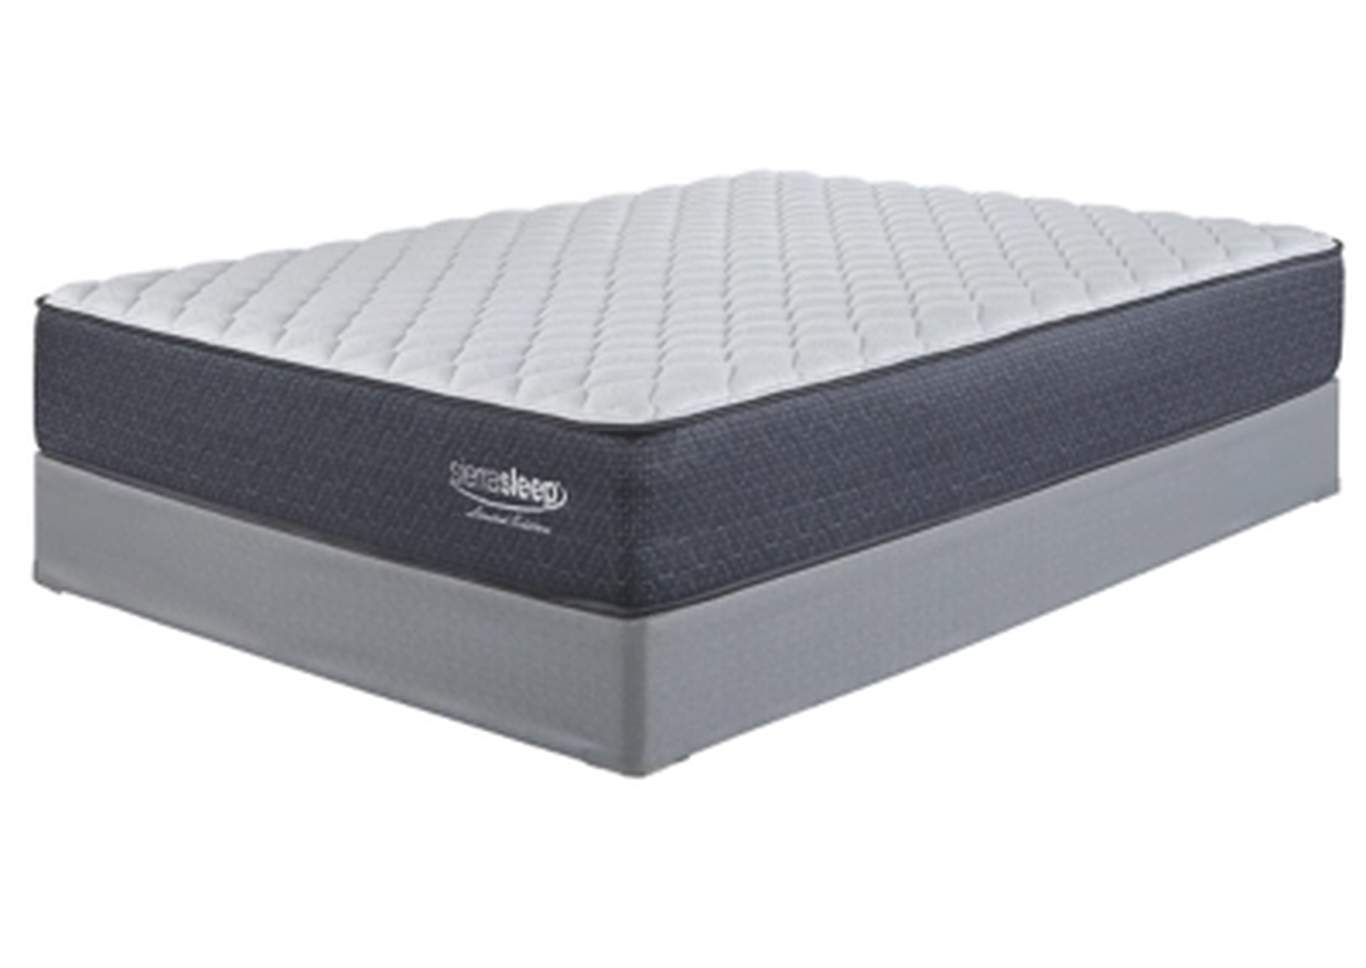 Limited Edition Firm White Queen Mattress,Sierra Sleep by Ashley